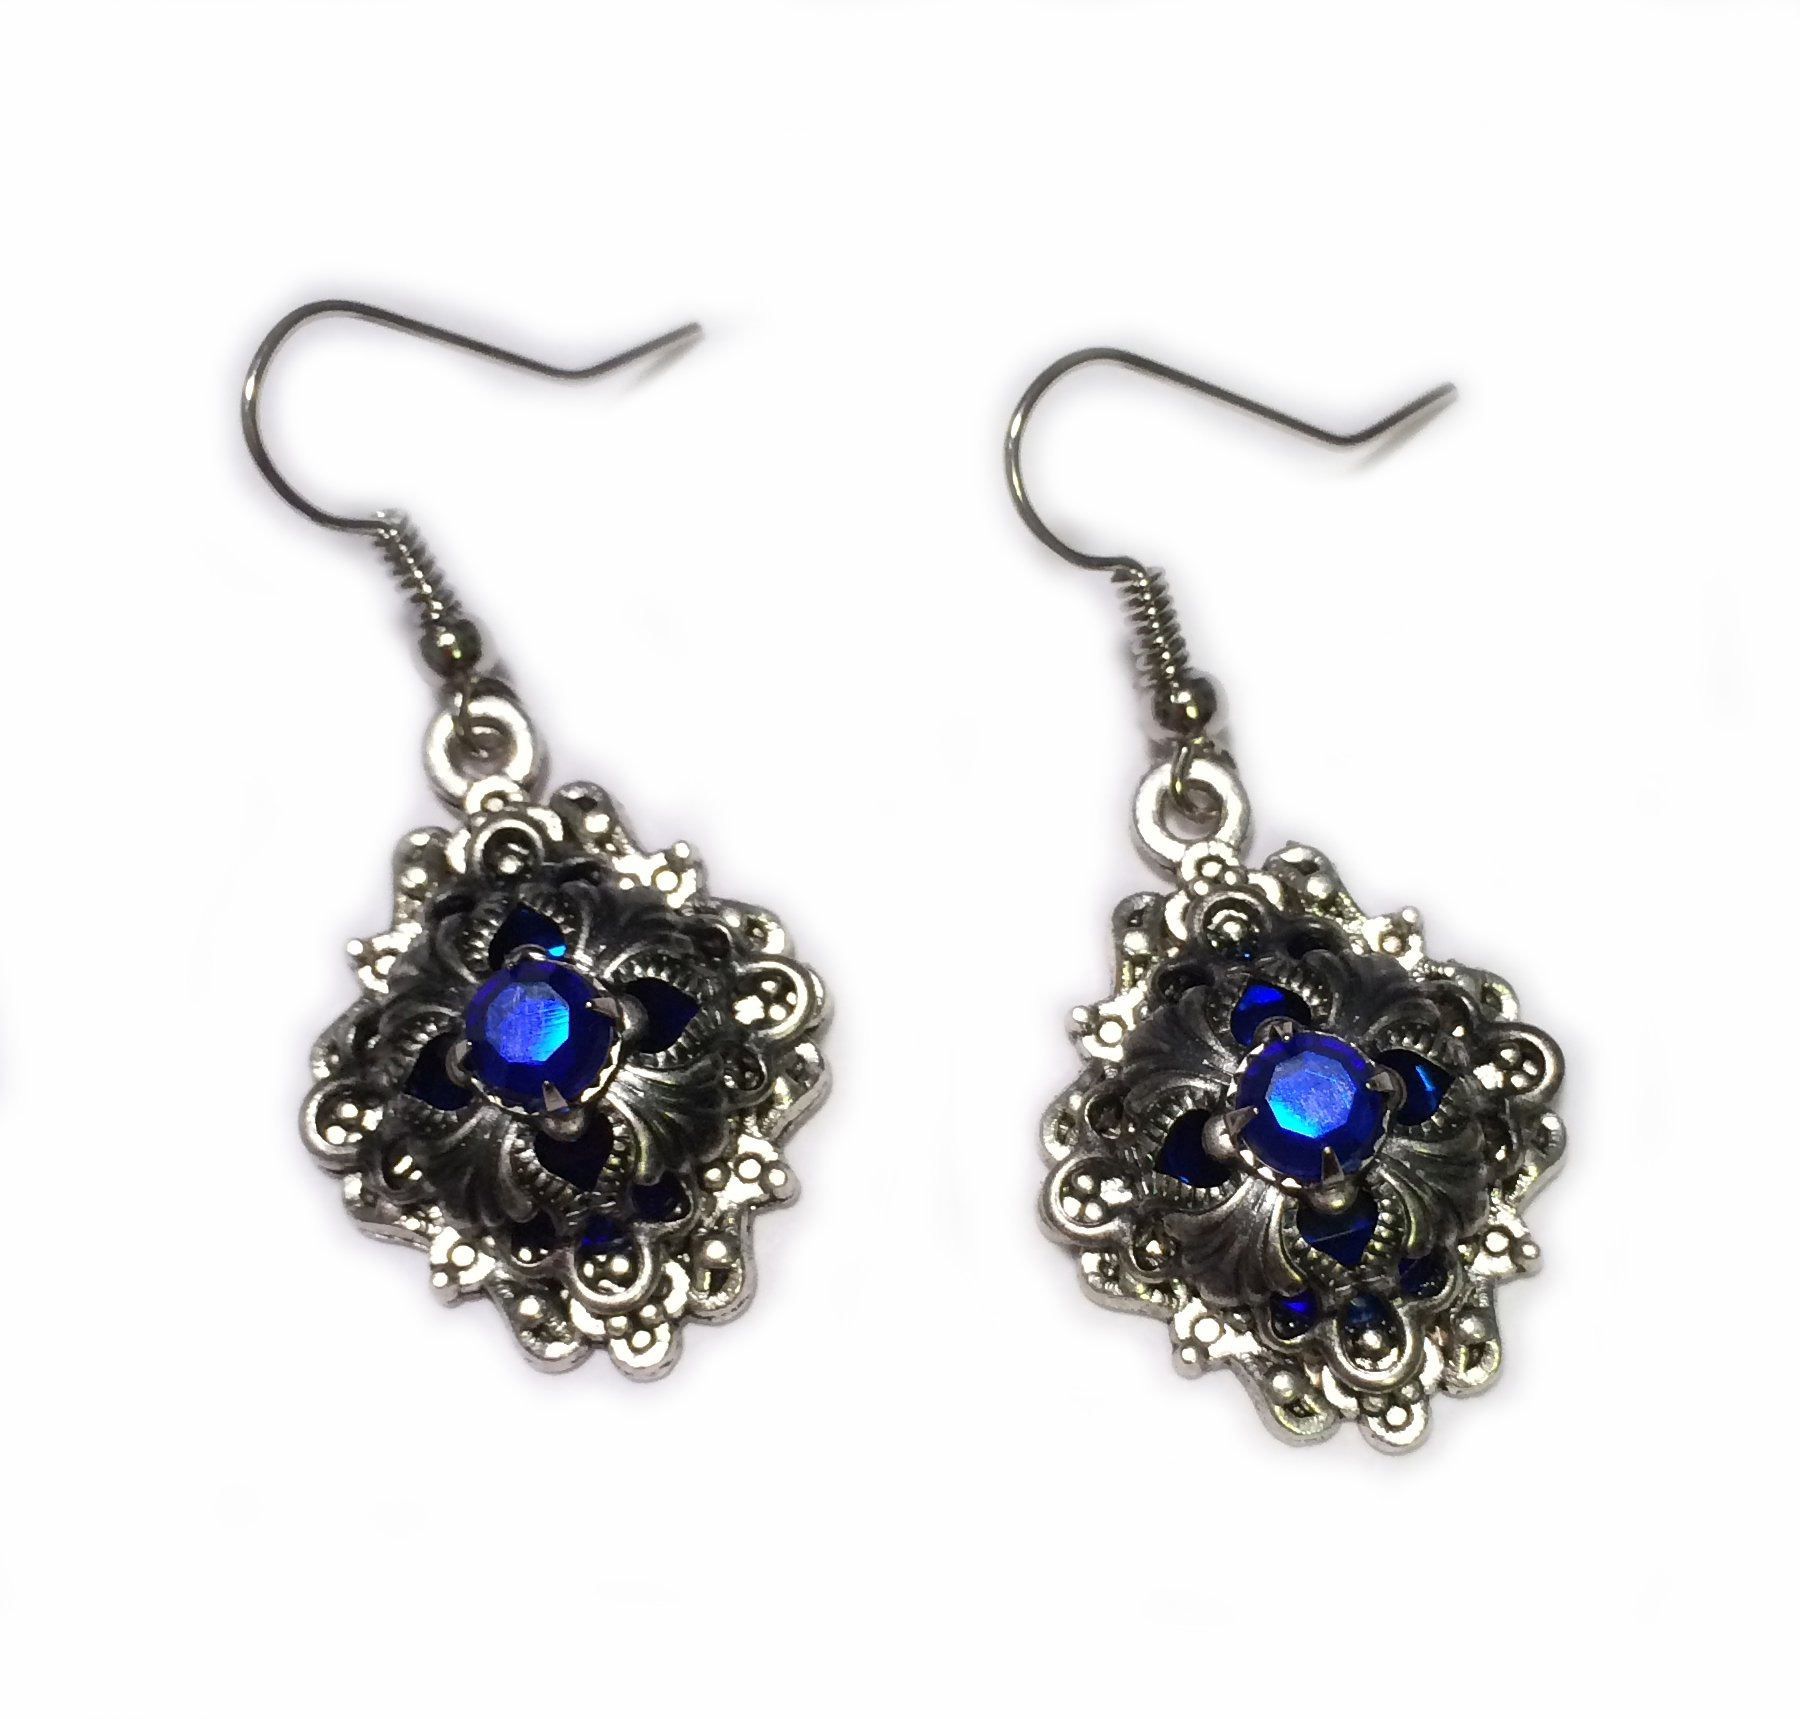 Moon Maiden Jewelry Simple Caged Filigree Earrings: Dark Blue